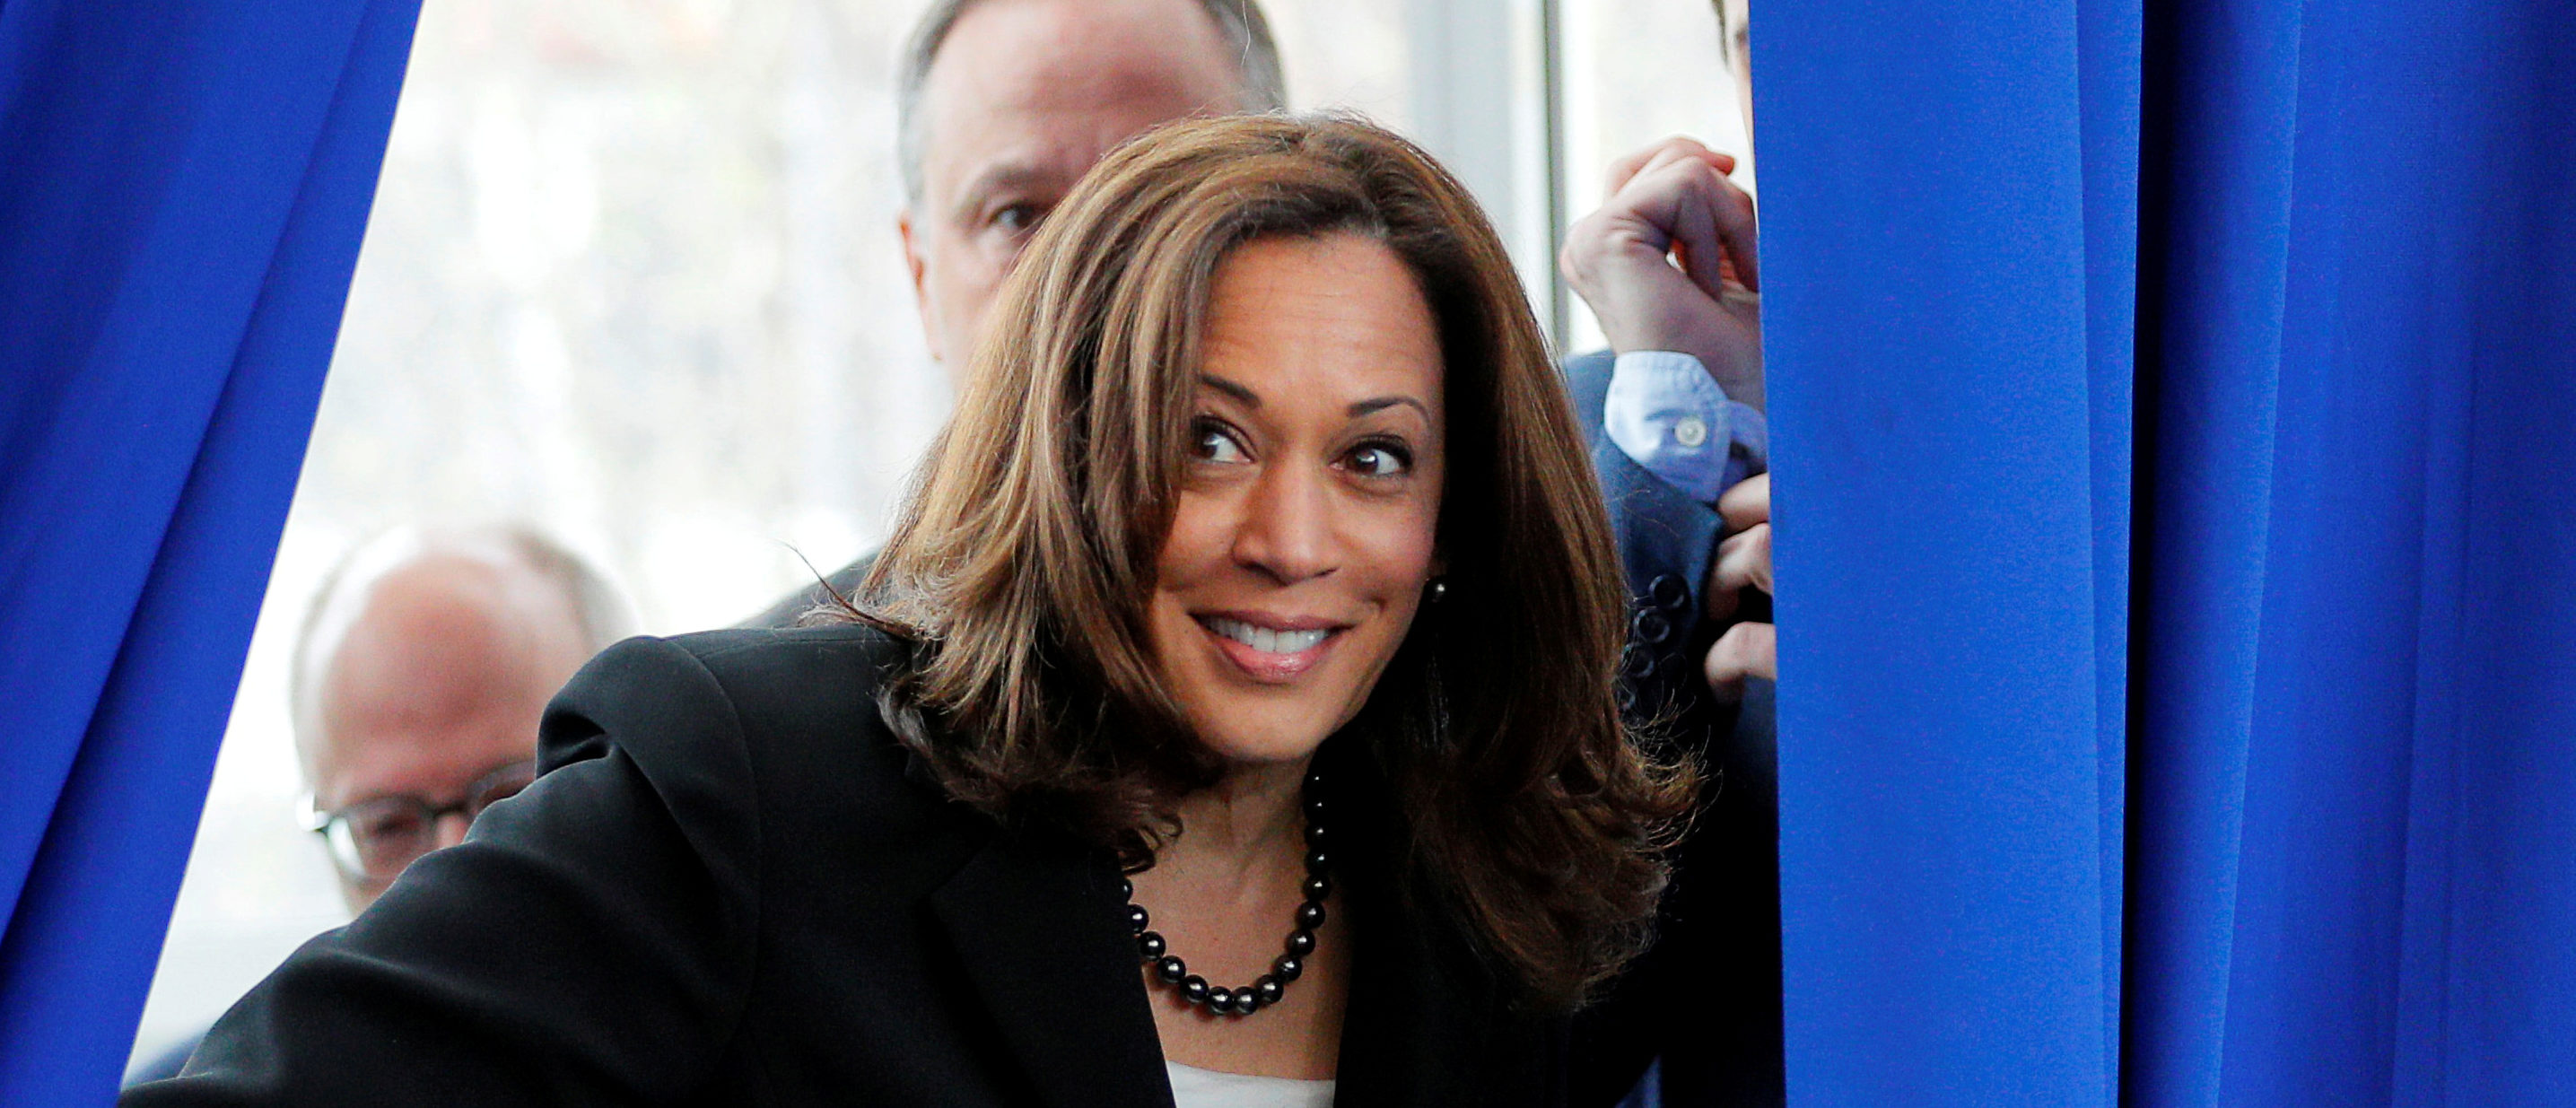 Democratic 2020 U.S. presidential candidate and U.S. Senator Kamala Harris (D-CA) takes the stage for a campaign stop at Keene State College in Keene, New Hampshire, U.S., April 23, 2019. REUTERS/Brian Snyder